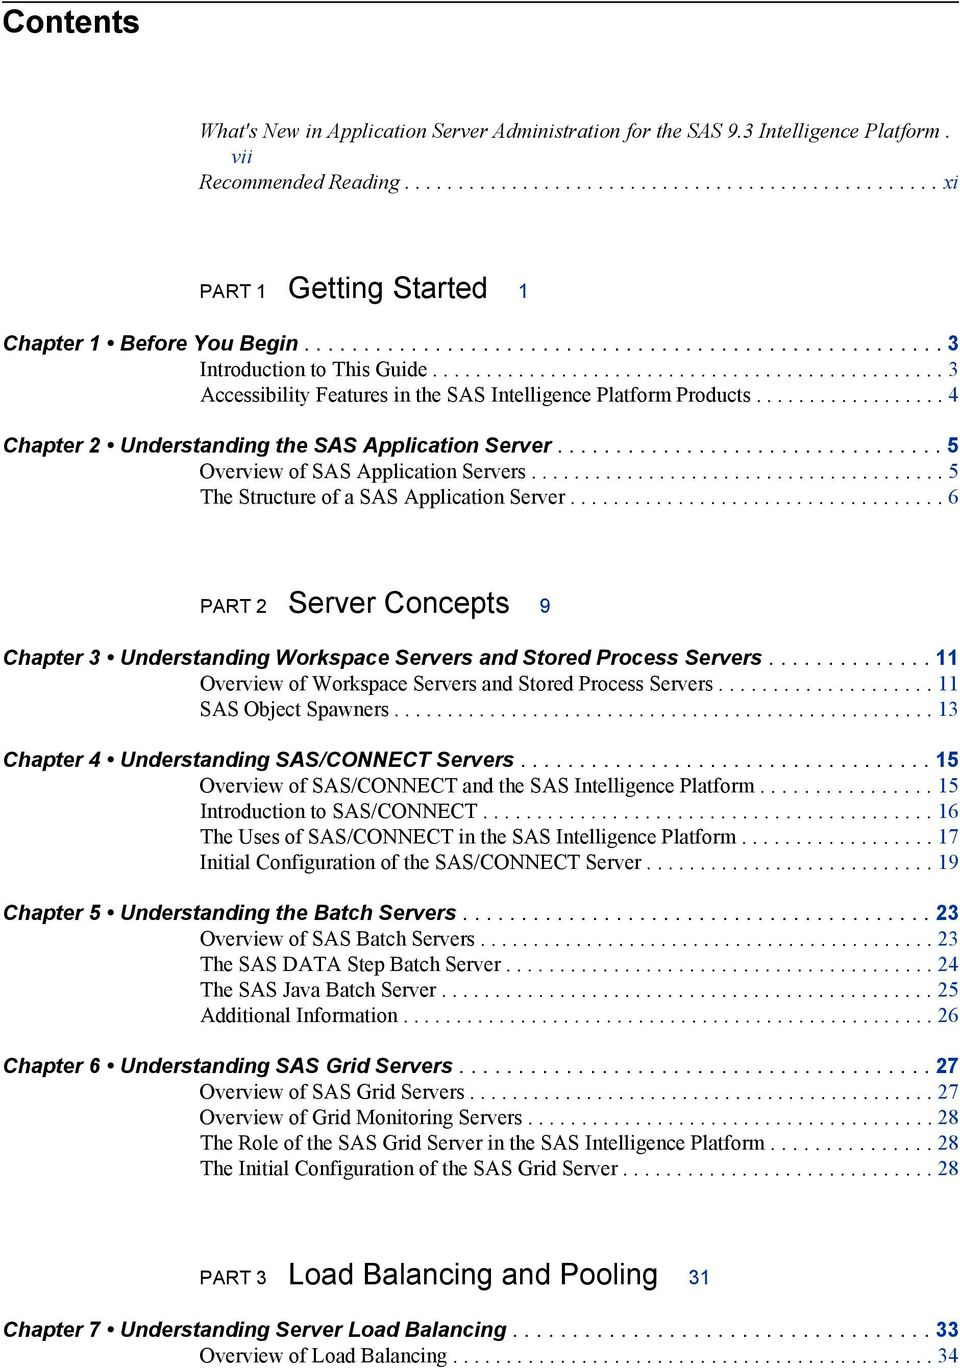 ................. 4 Chapter 2 Understanding the SAS Application Server................................. 5 Overview of SAS Application Servers....................................... 5 The Structure of a SAS Application Server.